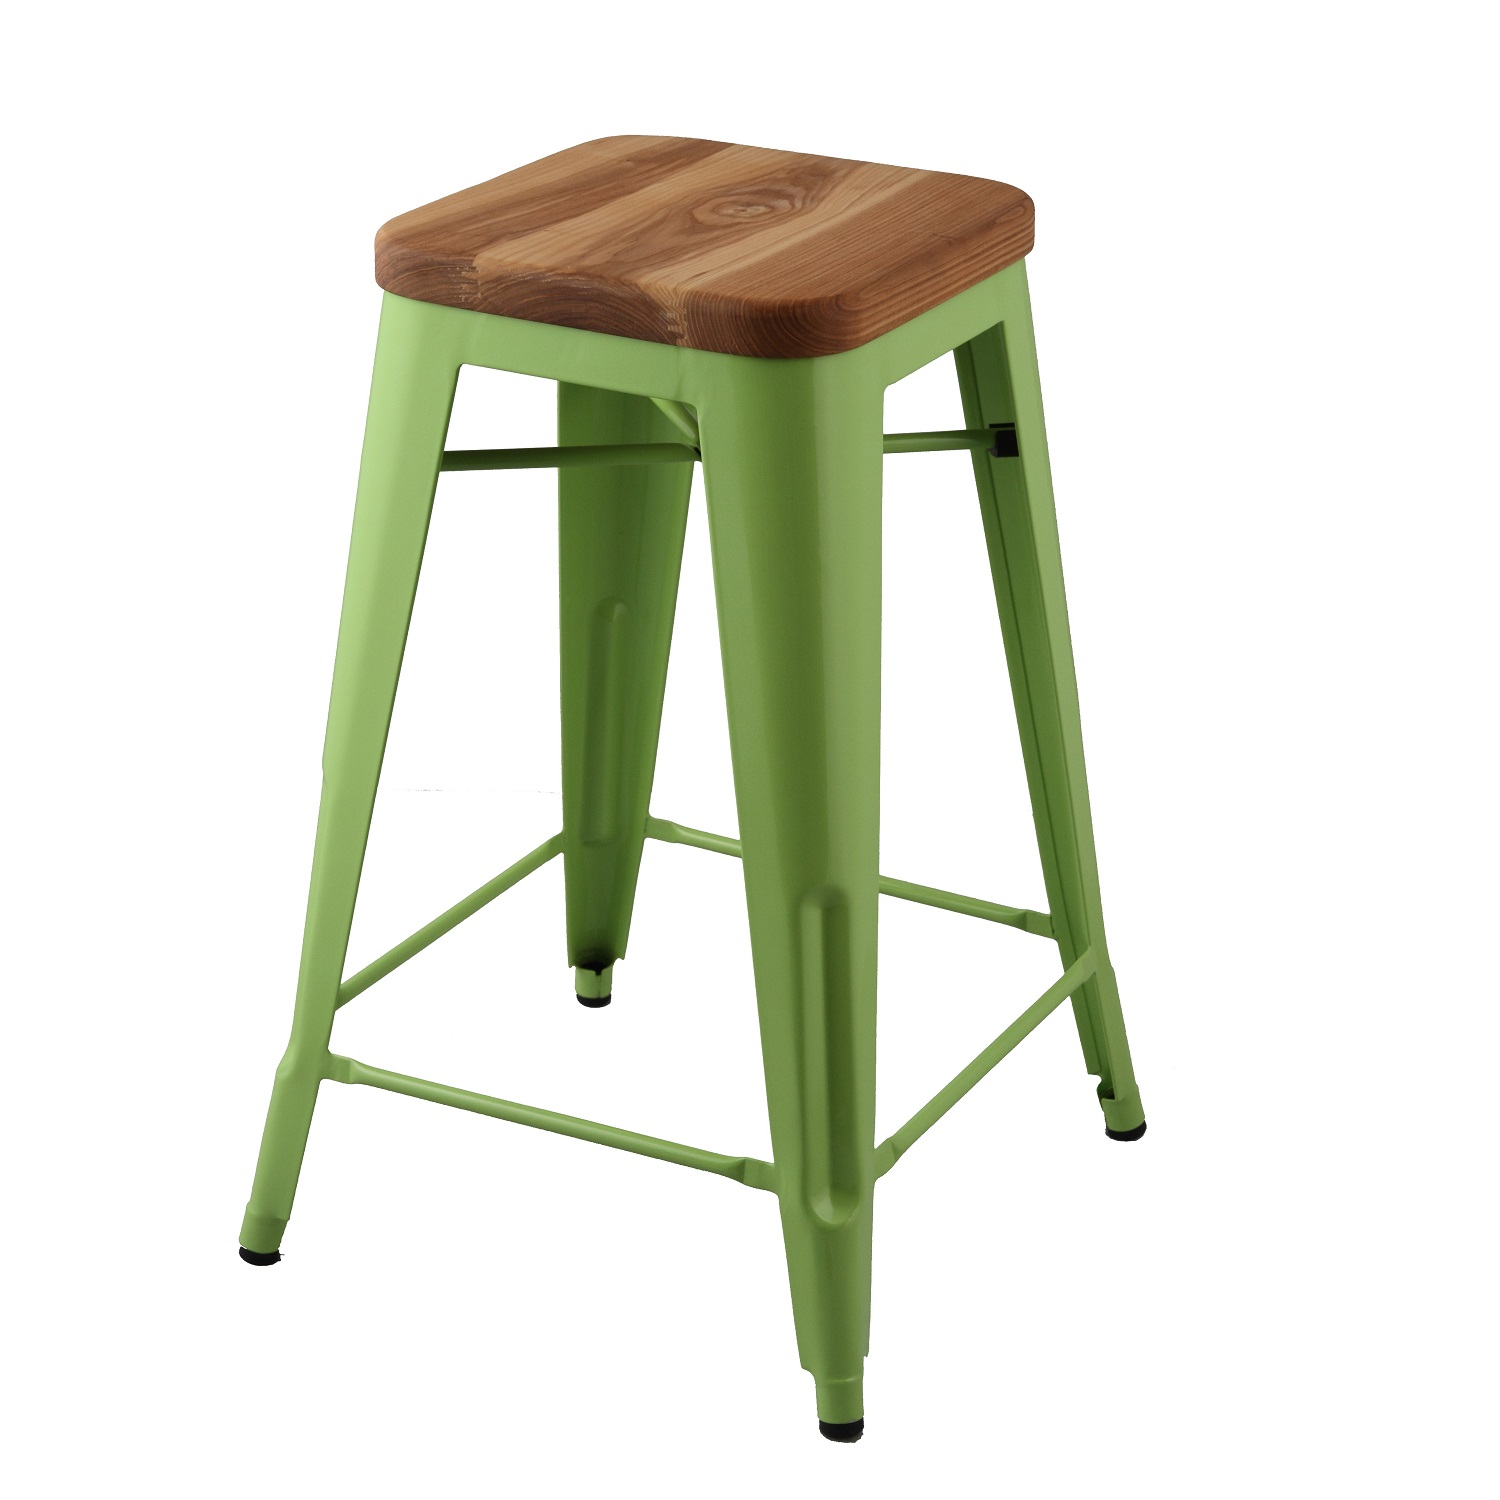 chair stools wooden covers long back replica xavier pauchard seat tolix stool